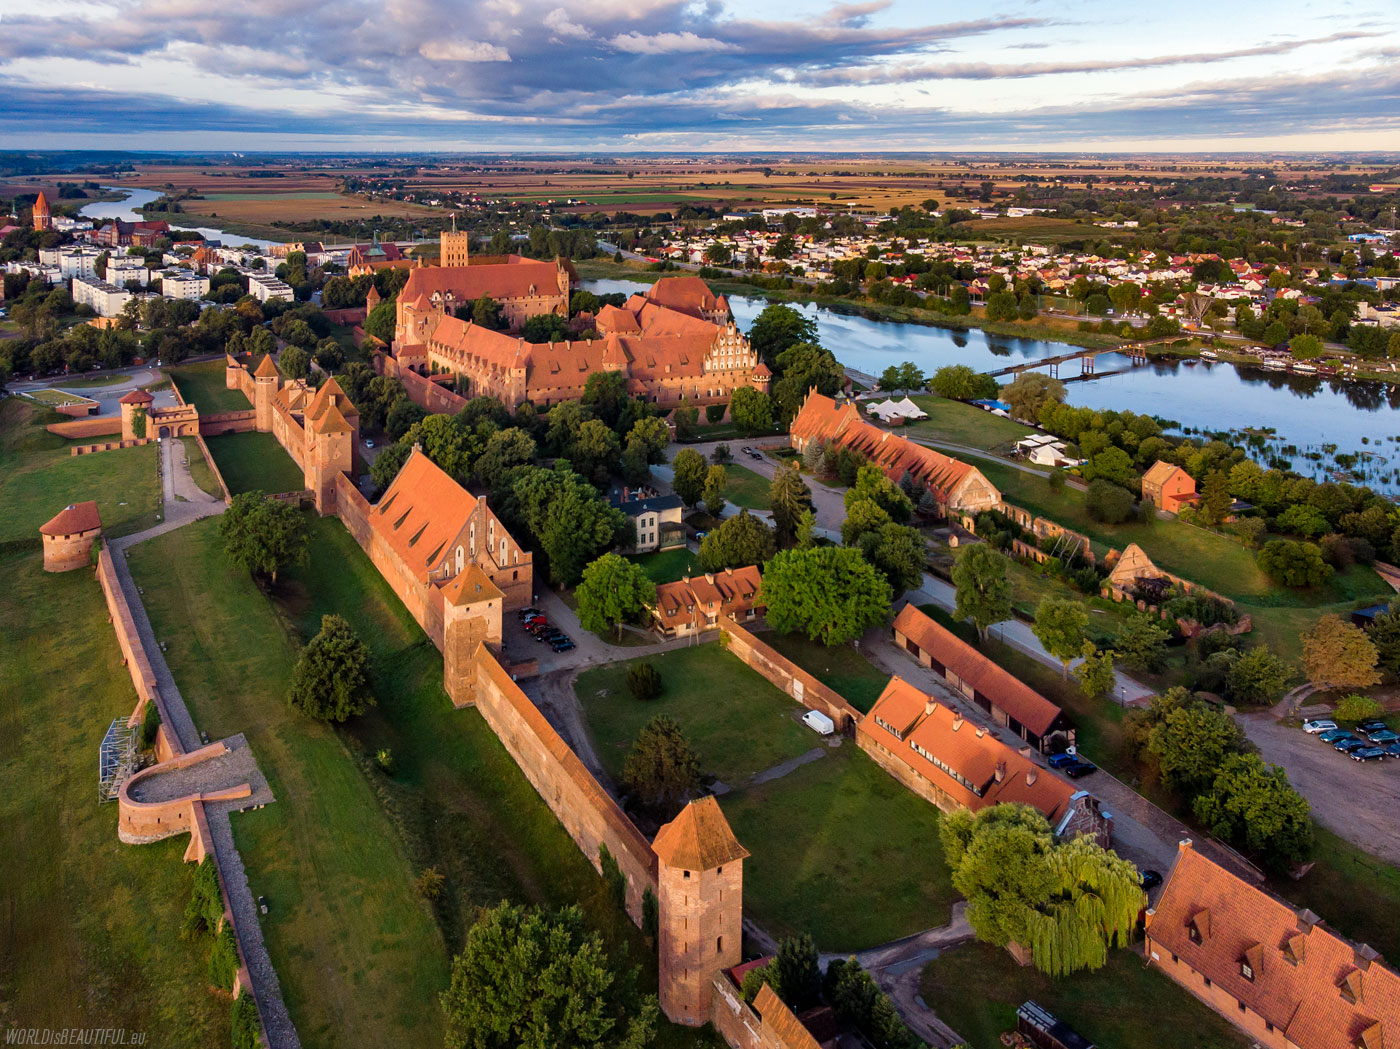 Accommodation at the castle in Malbork